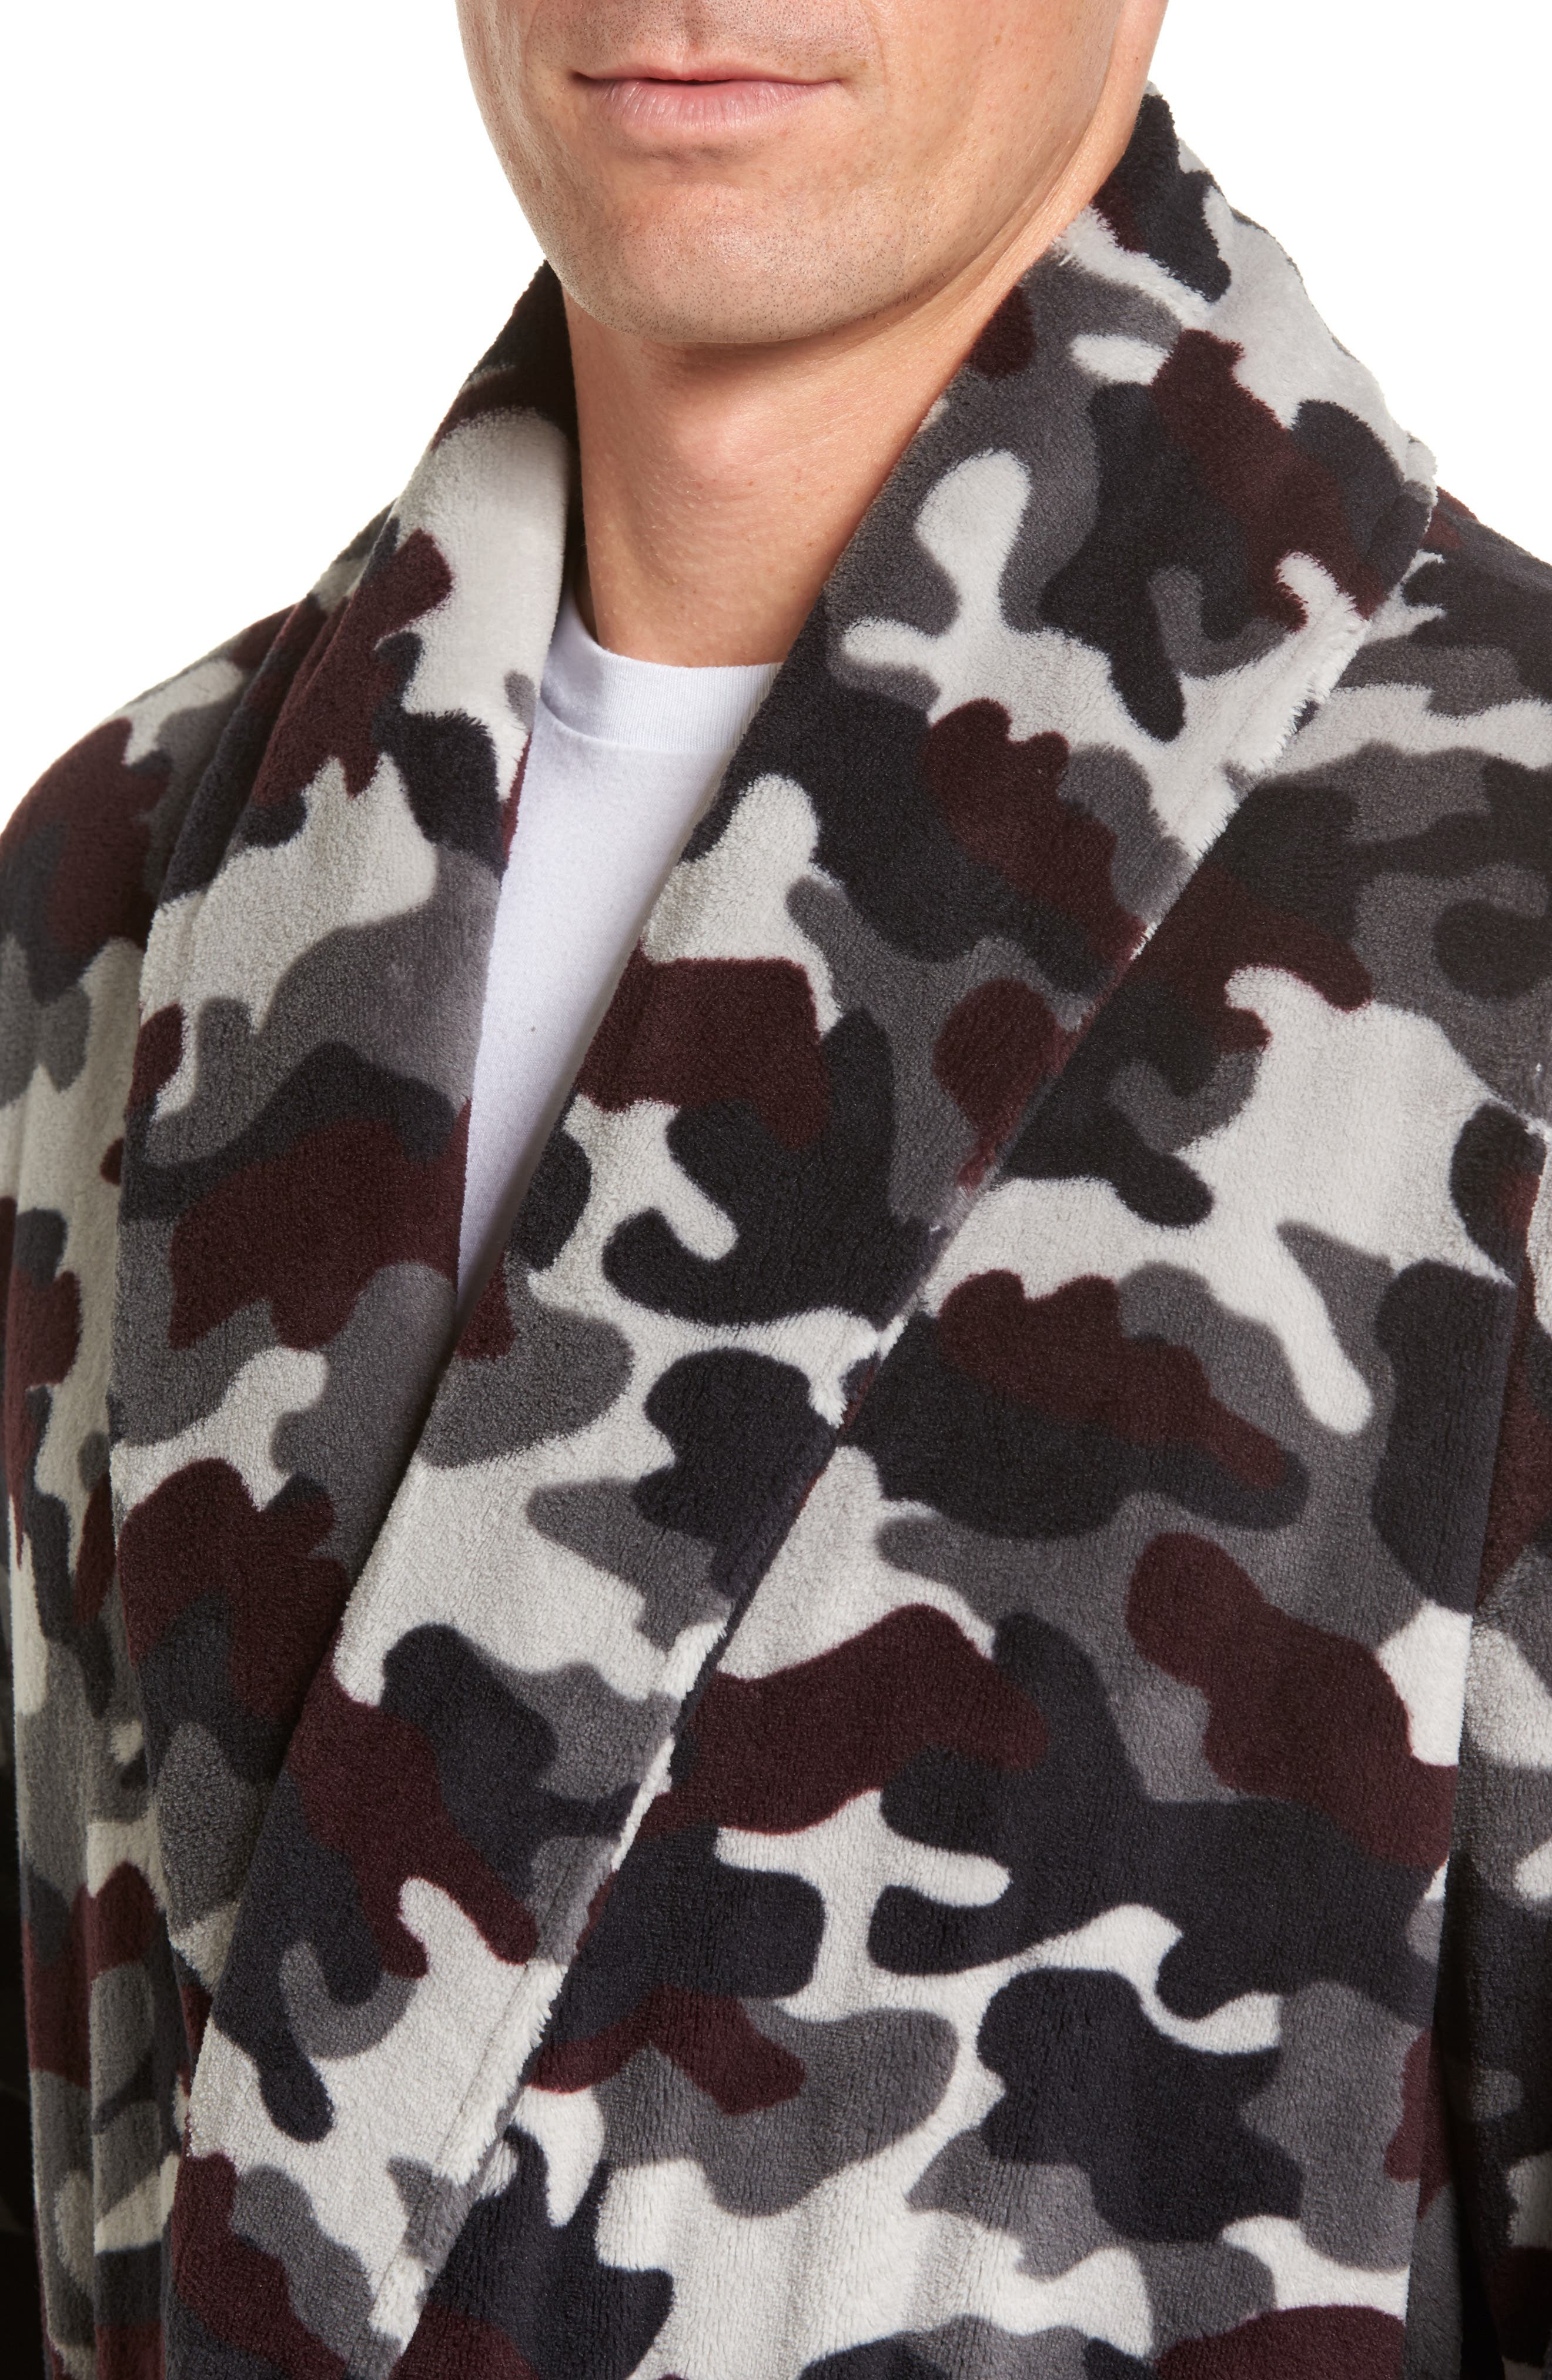 Cold Conquest Robe,                             Alternate thumbnail 4, color,                             Charcoal Camo